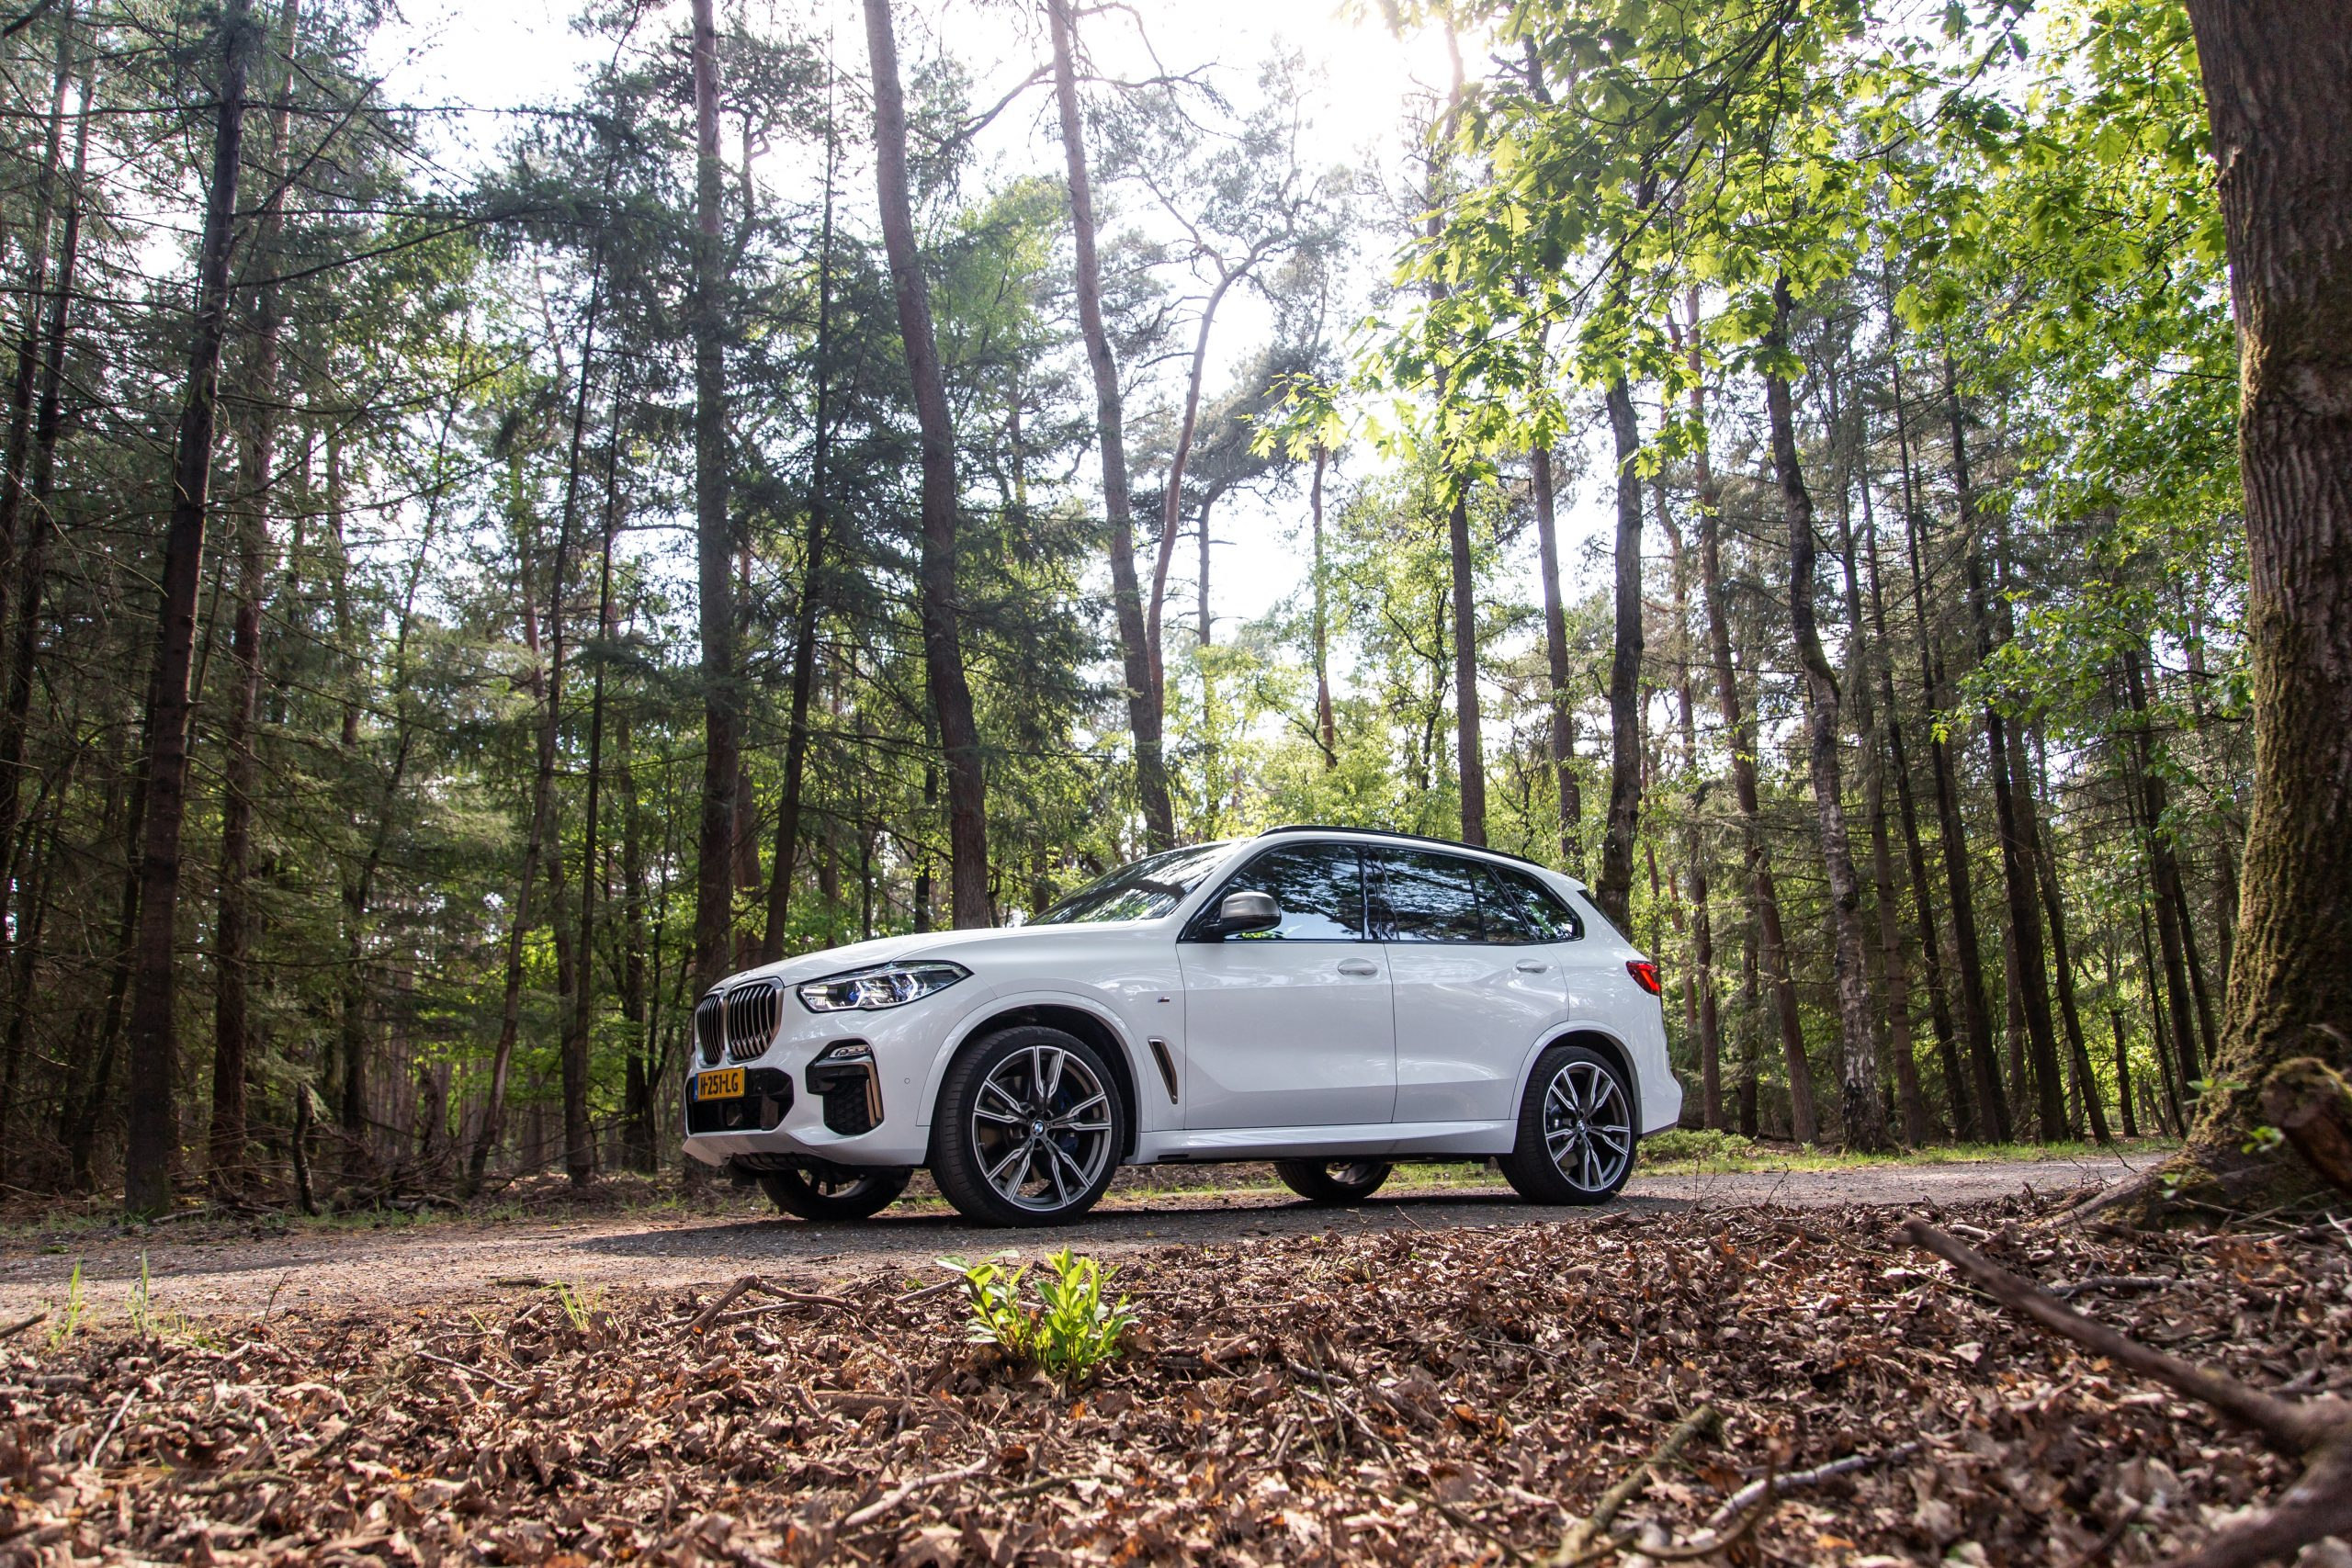 bmw x7 in forest